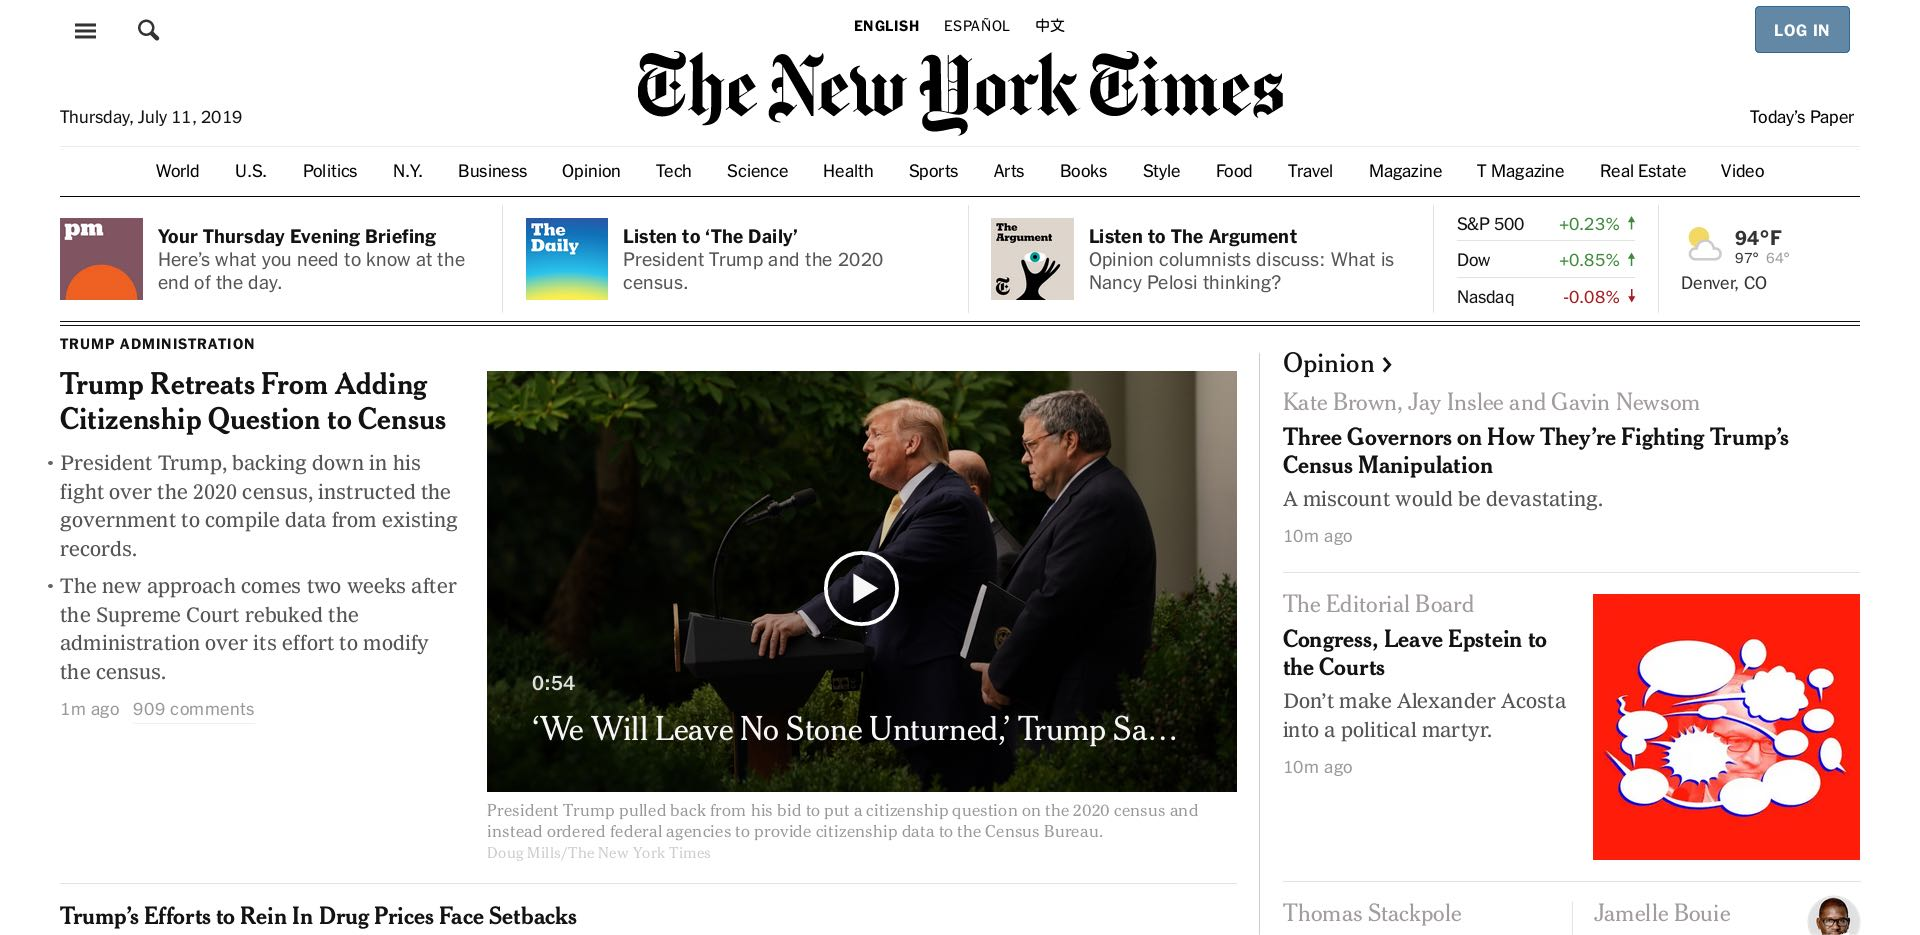 The New York Times home page on July 7, 2019